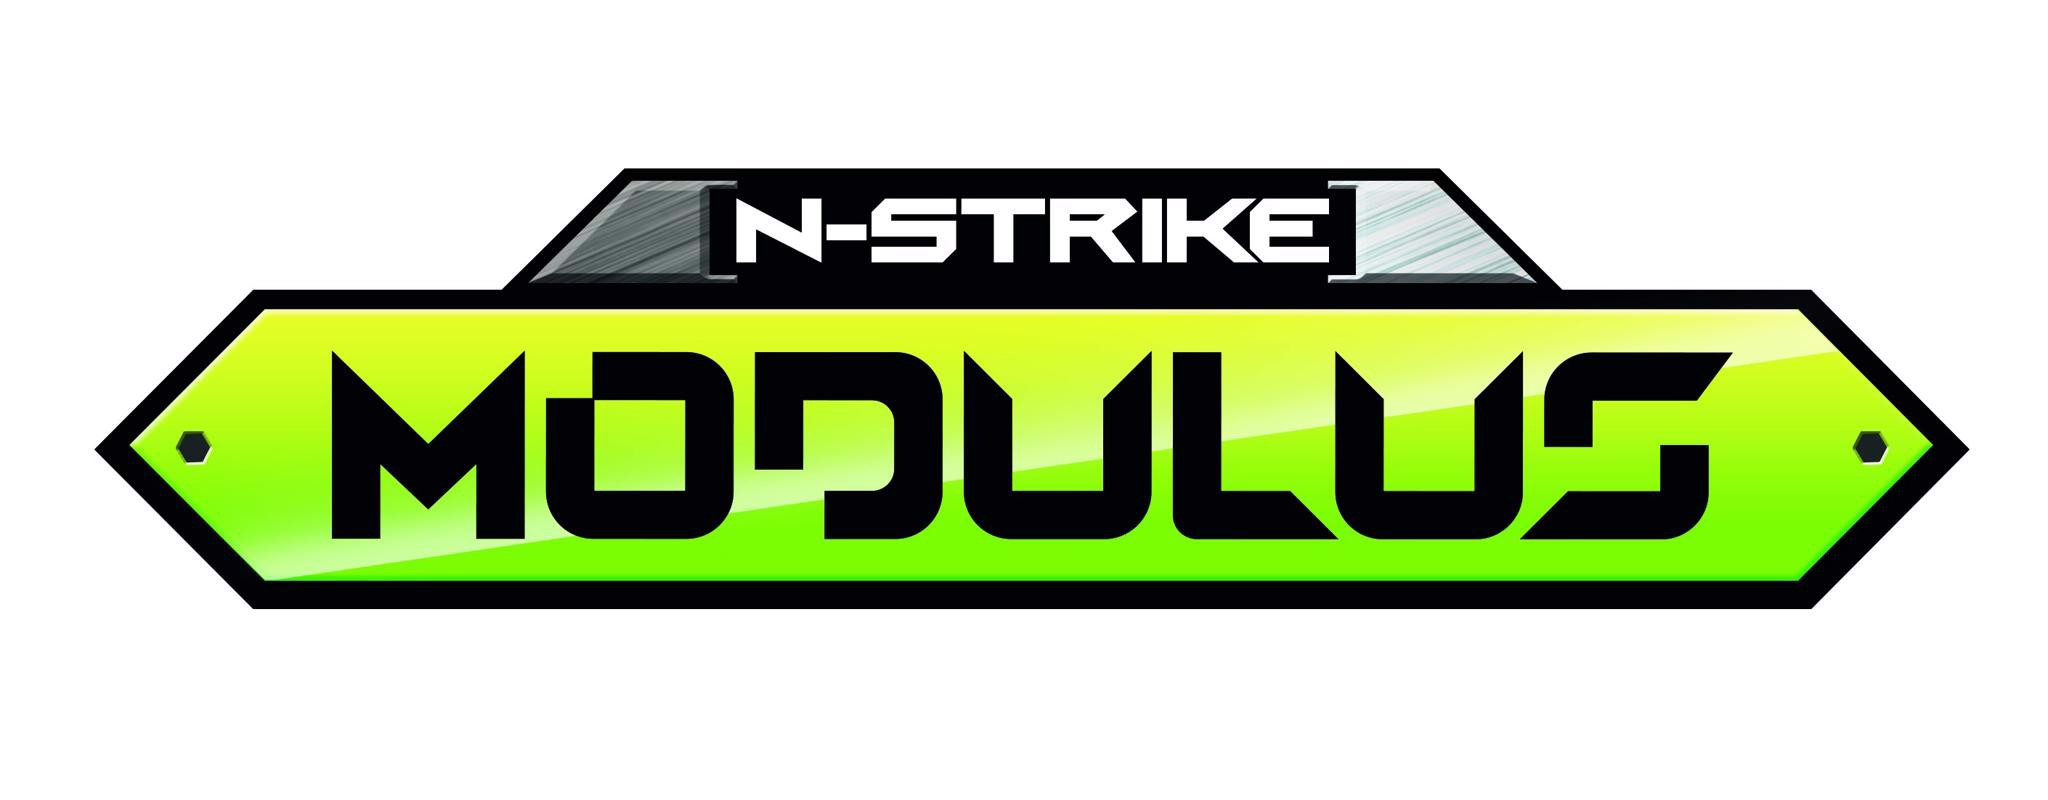 https://file.hstatic.net/1000206615/collection/nerf_modulus_logo_copy_1_1_2.jpg